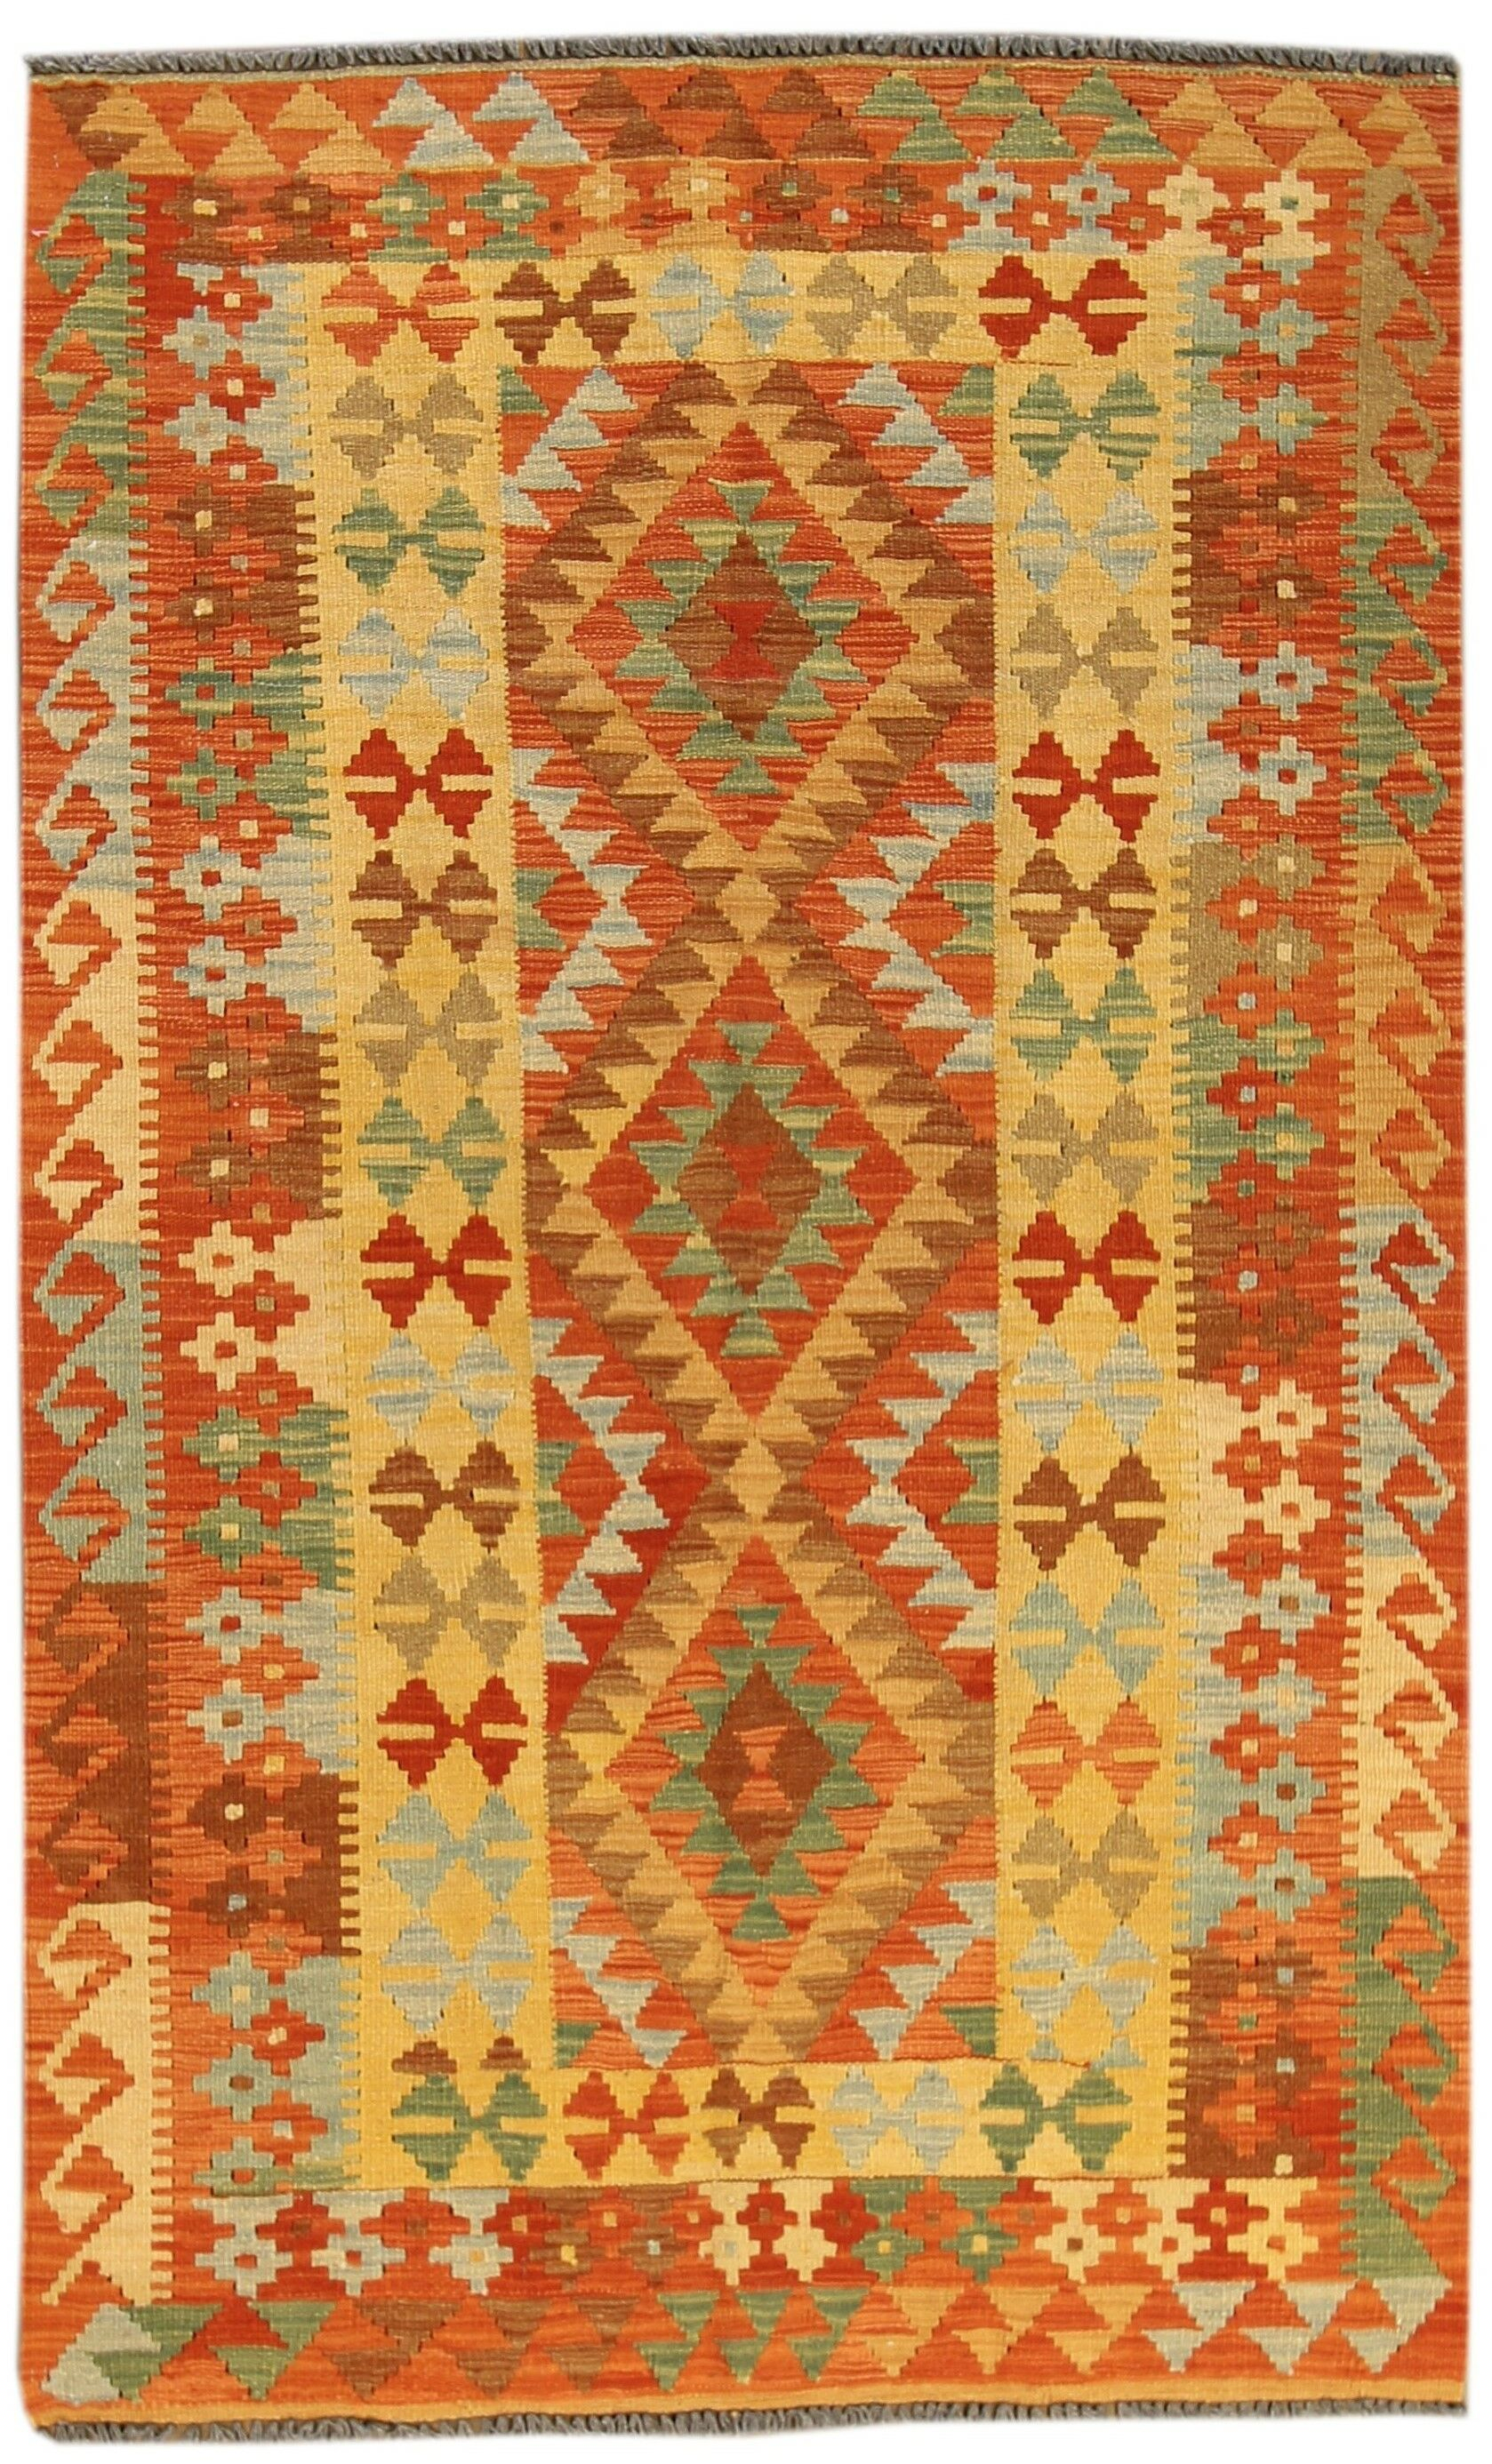 Kilim Hand-Woven Wool Orange Area Rug